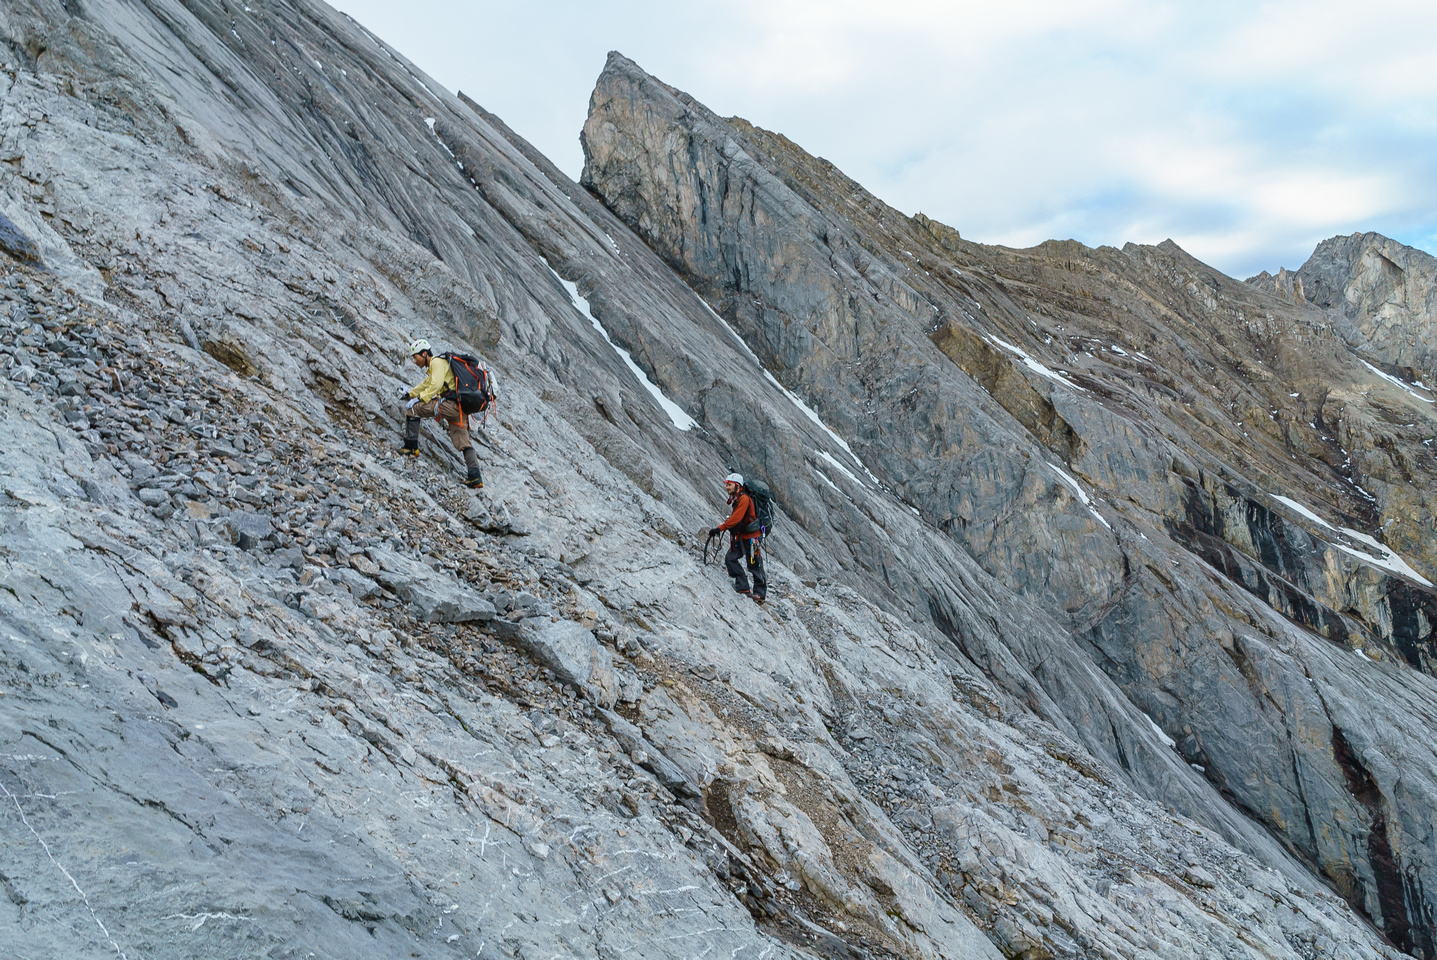 Typical slab climbing on the SW face as we contour back to the west ridge.